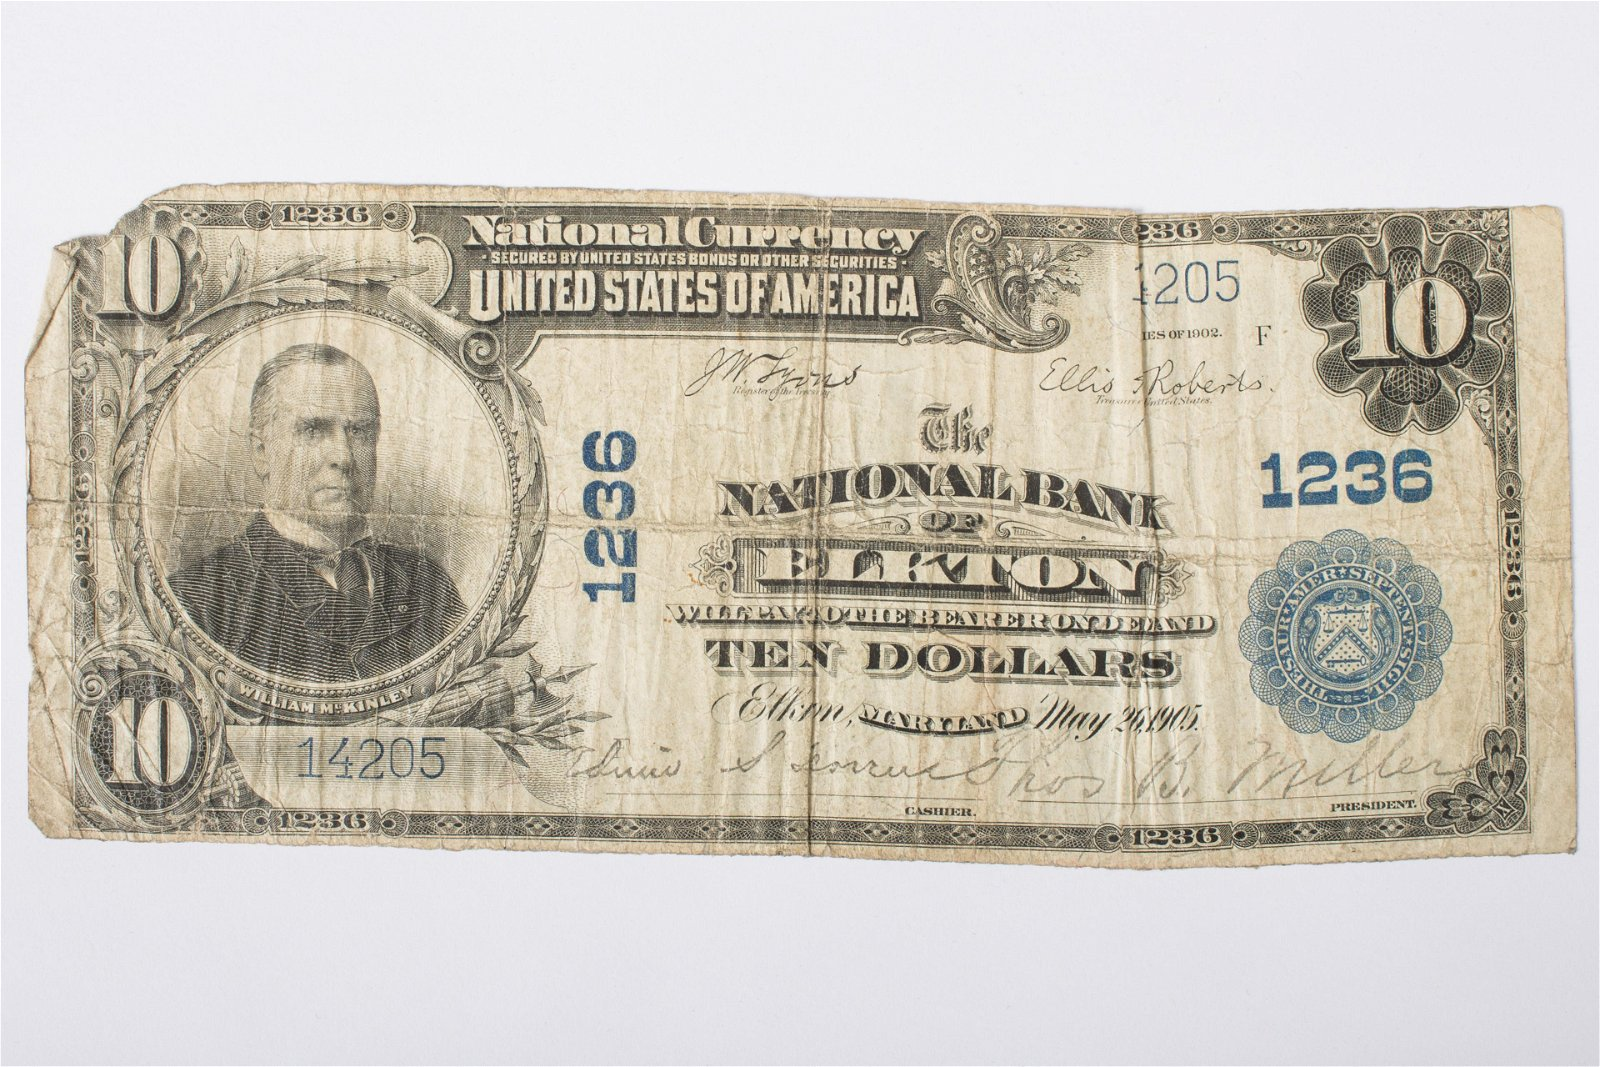 1902 $10 NATIONAL CURRENCY - ELKTON MD